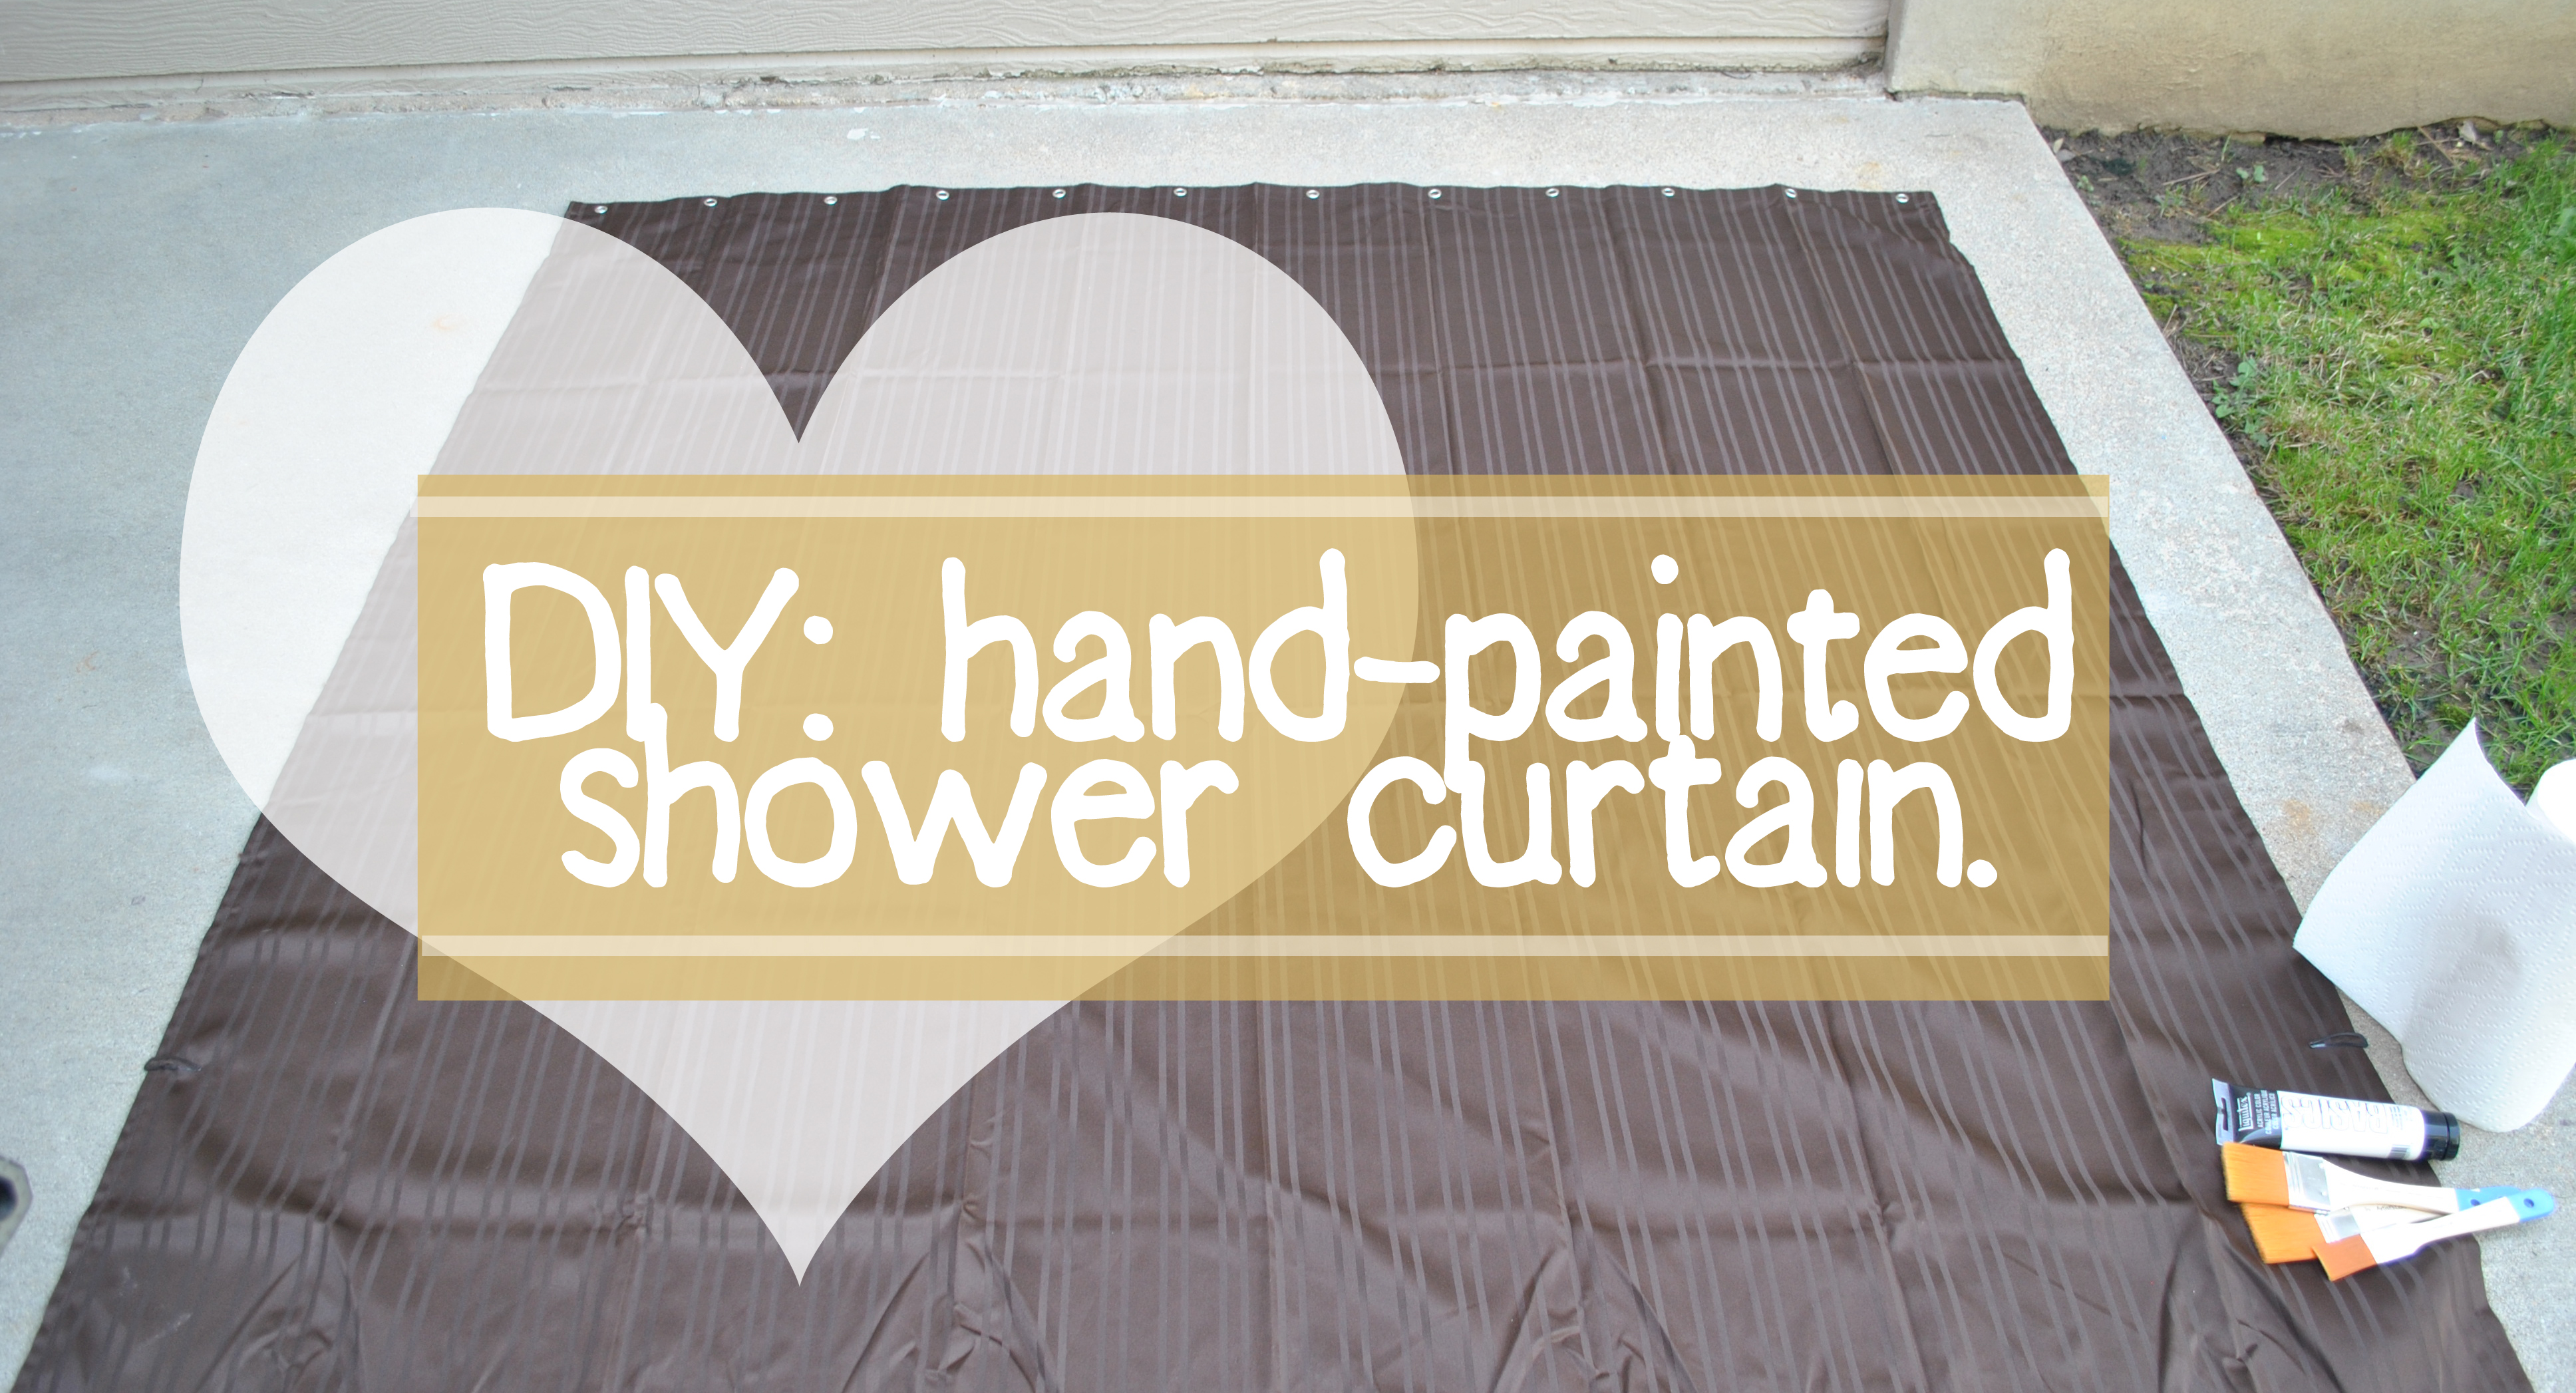 Diy painted shower curtain - Diy Painted Shower Curtain 0